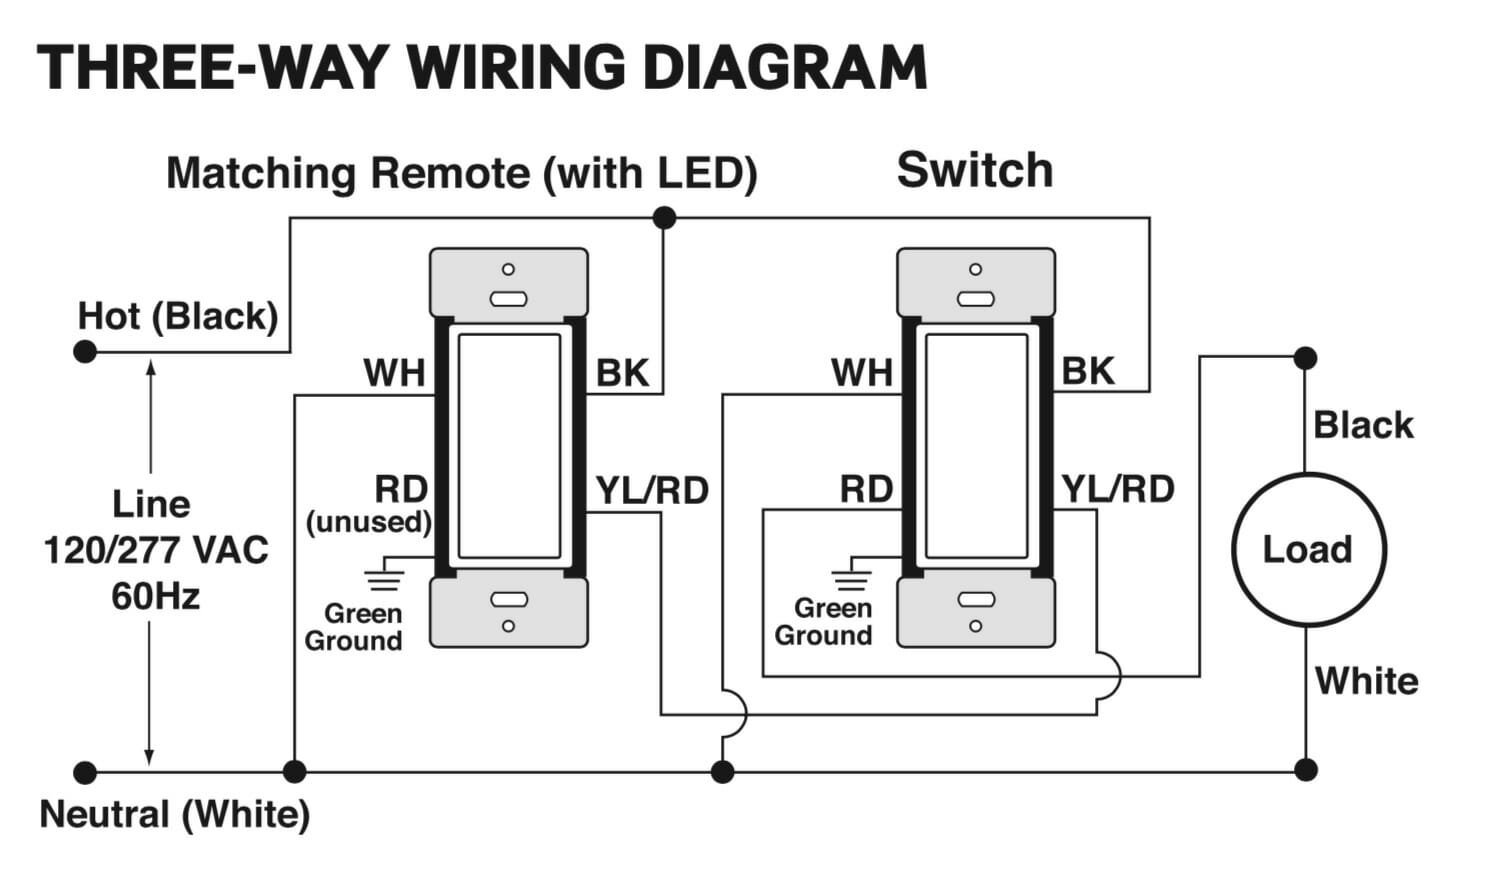 leviton decora 3 way switch wiring diagram sand rail homekit light switches and dimmers review